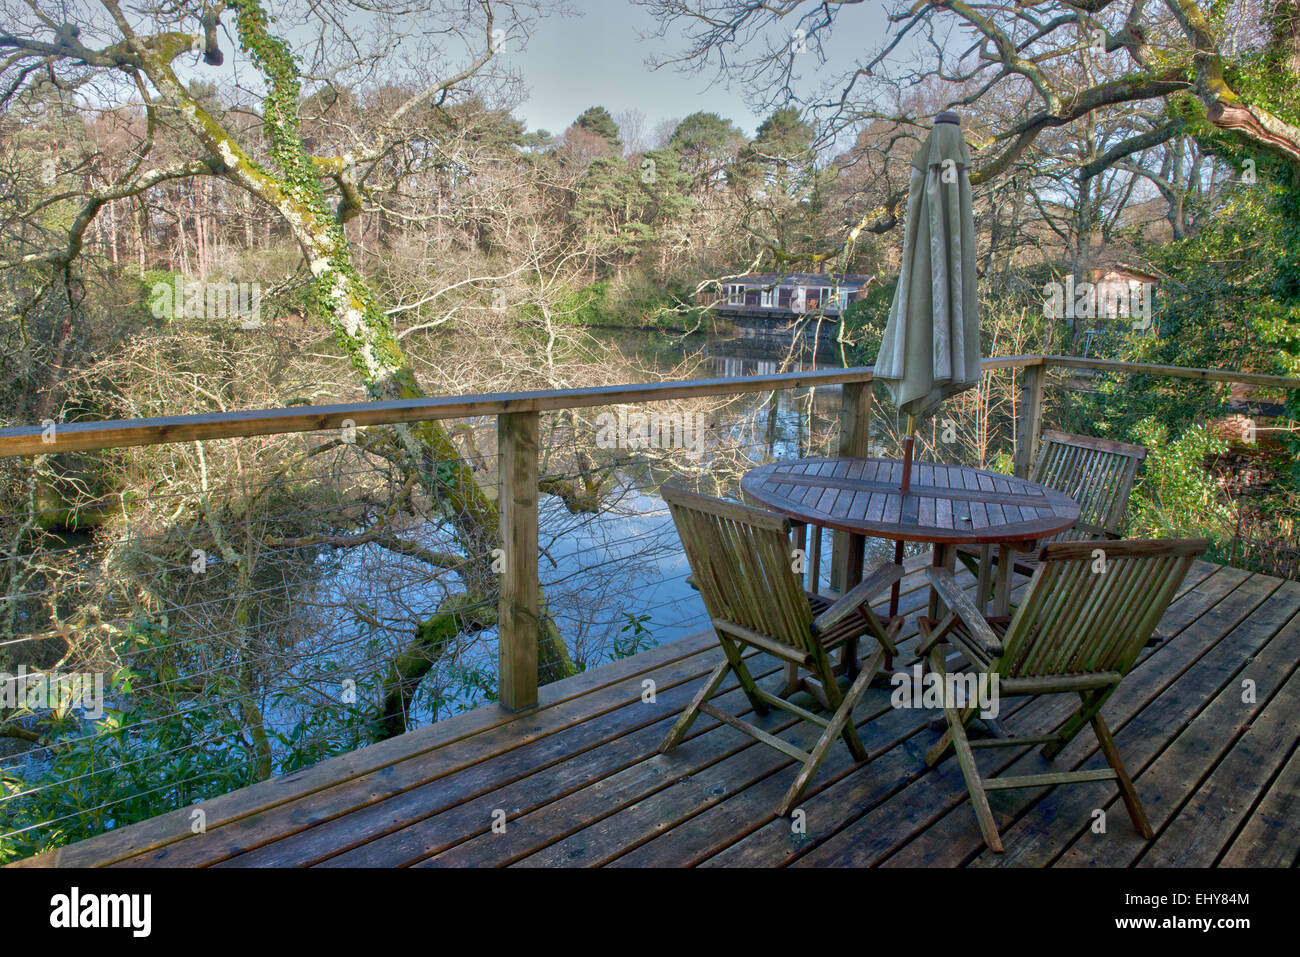 Indio Lake Lodges, Bovey Tracey, Devon, England, UK, FR Photo Stock